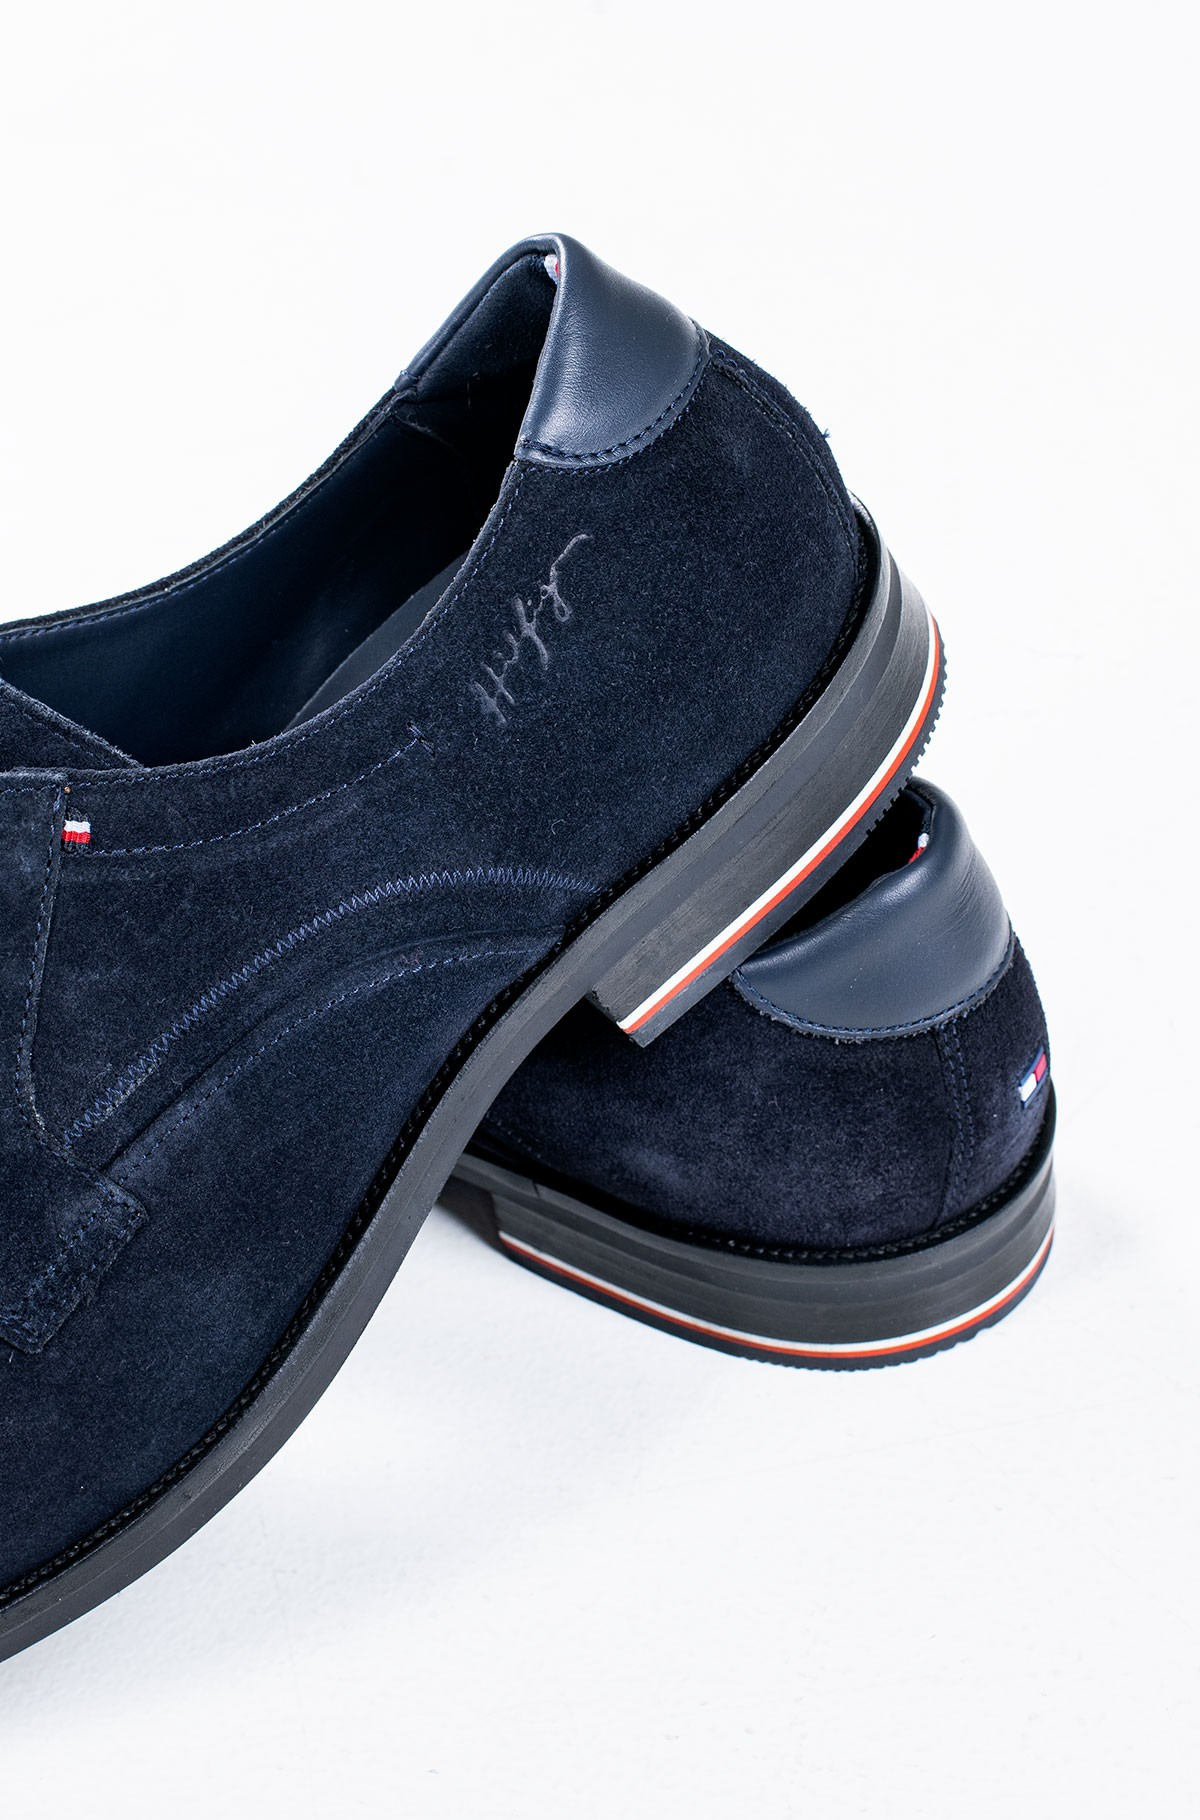 Shoes SIGNATURE HILFIGER SUEDE SHOE-full-2